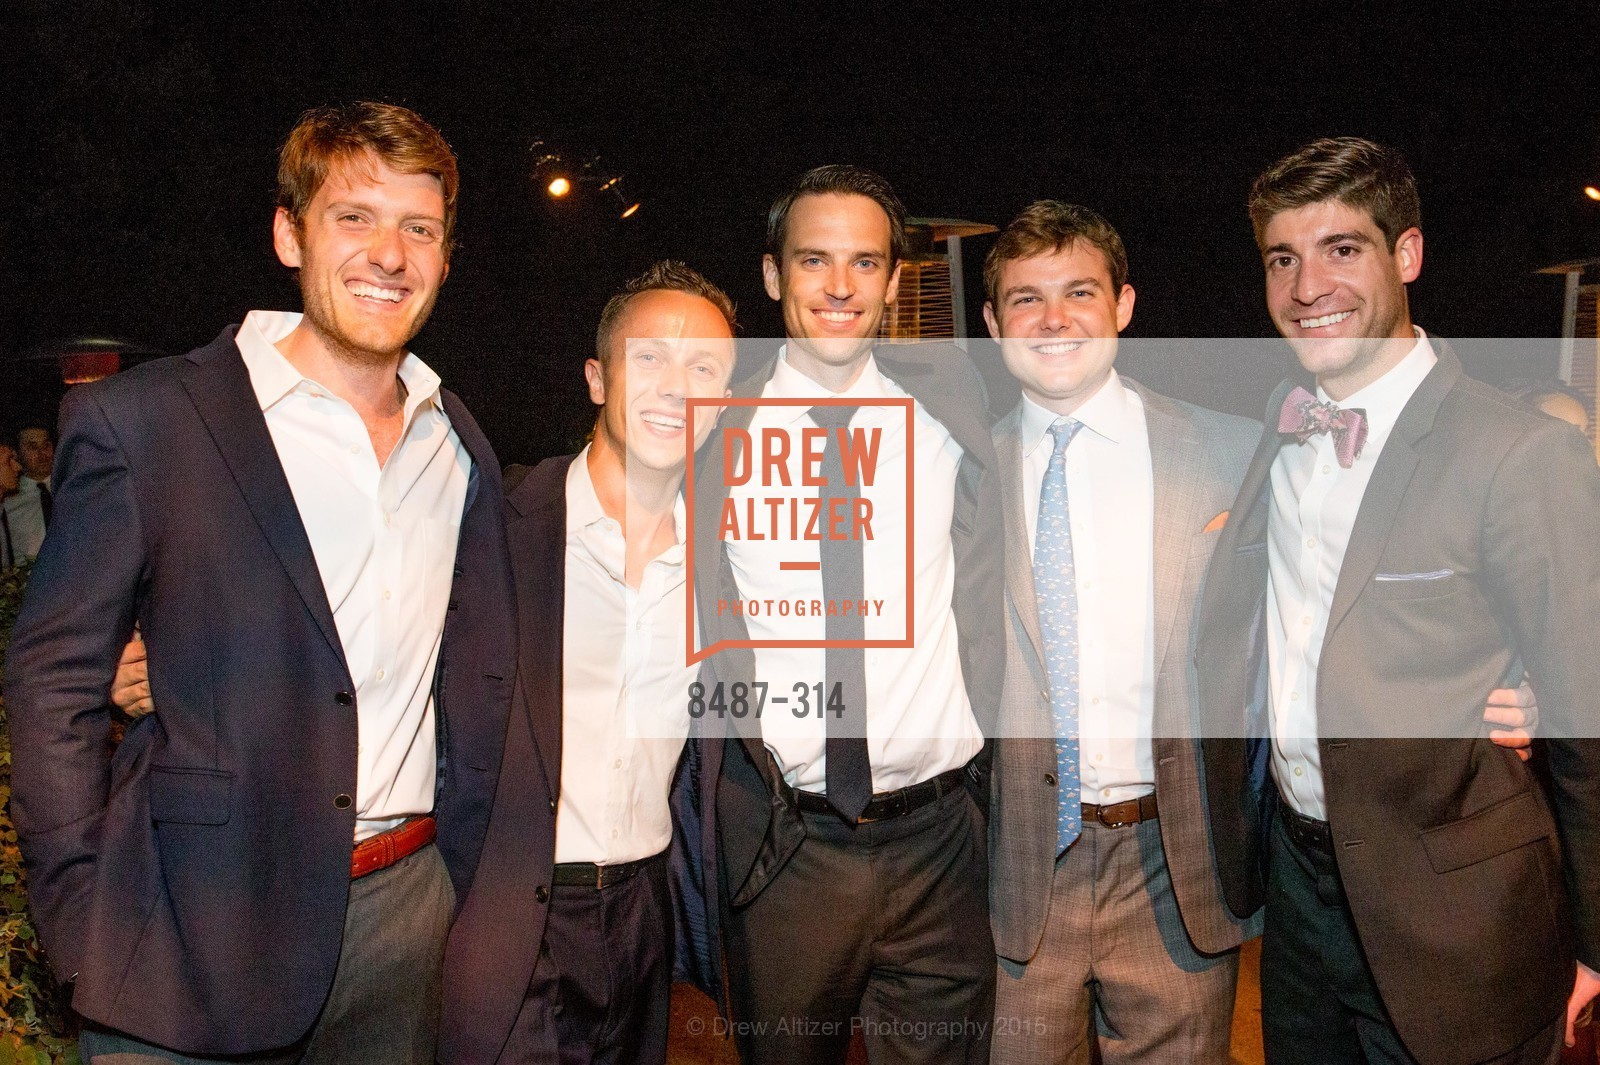 Gareth Hornberger, Scott Snow, Will Andereck, Clay Jameson, San Francisco Zoo Fur Ball, San Francisco Zoo, September 25th, 2015,Drew Altizer, Drew Altizer Photography, full-service agency, private events, San Francisco photographer, photographer california